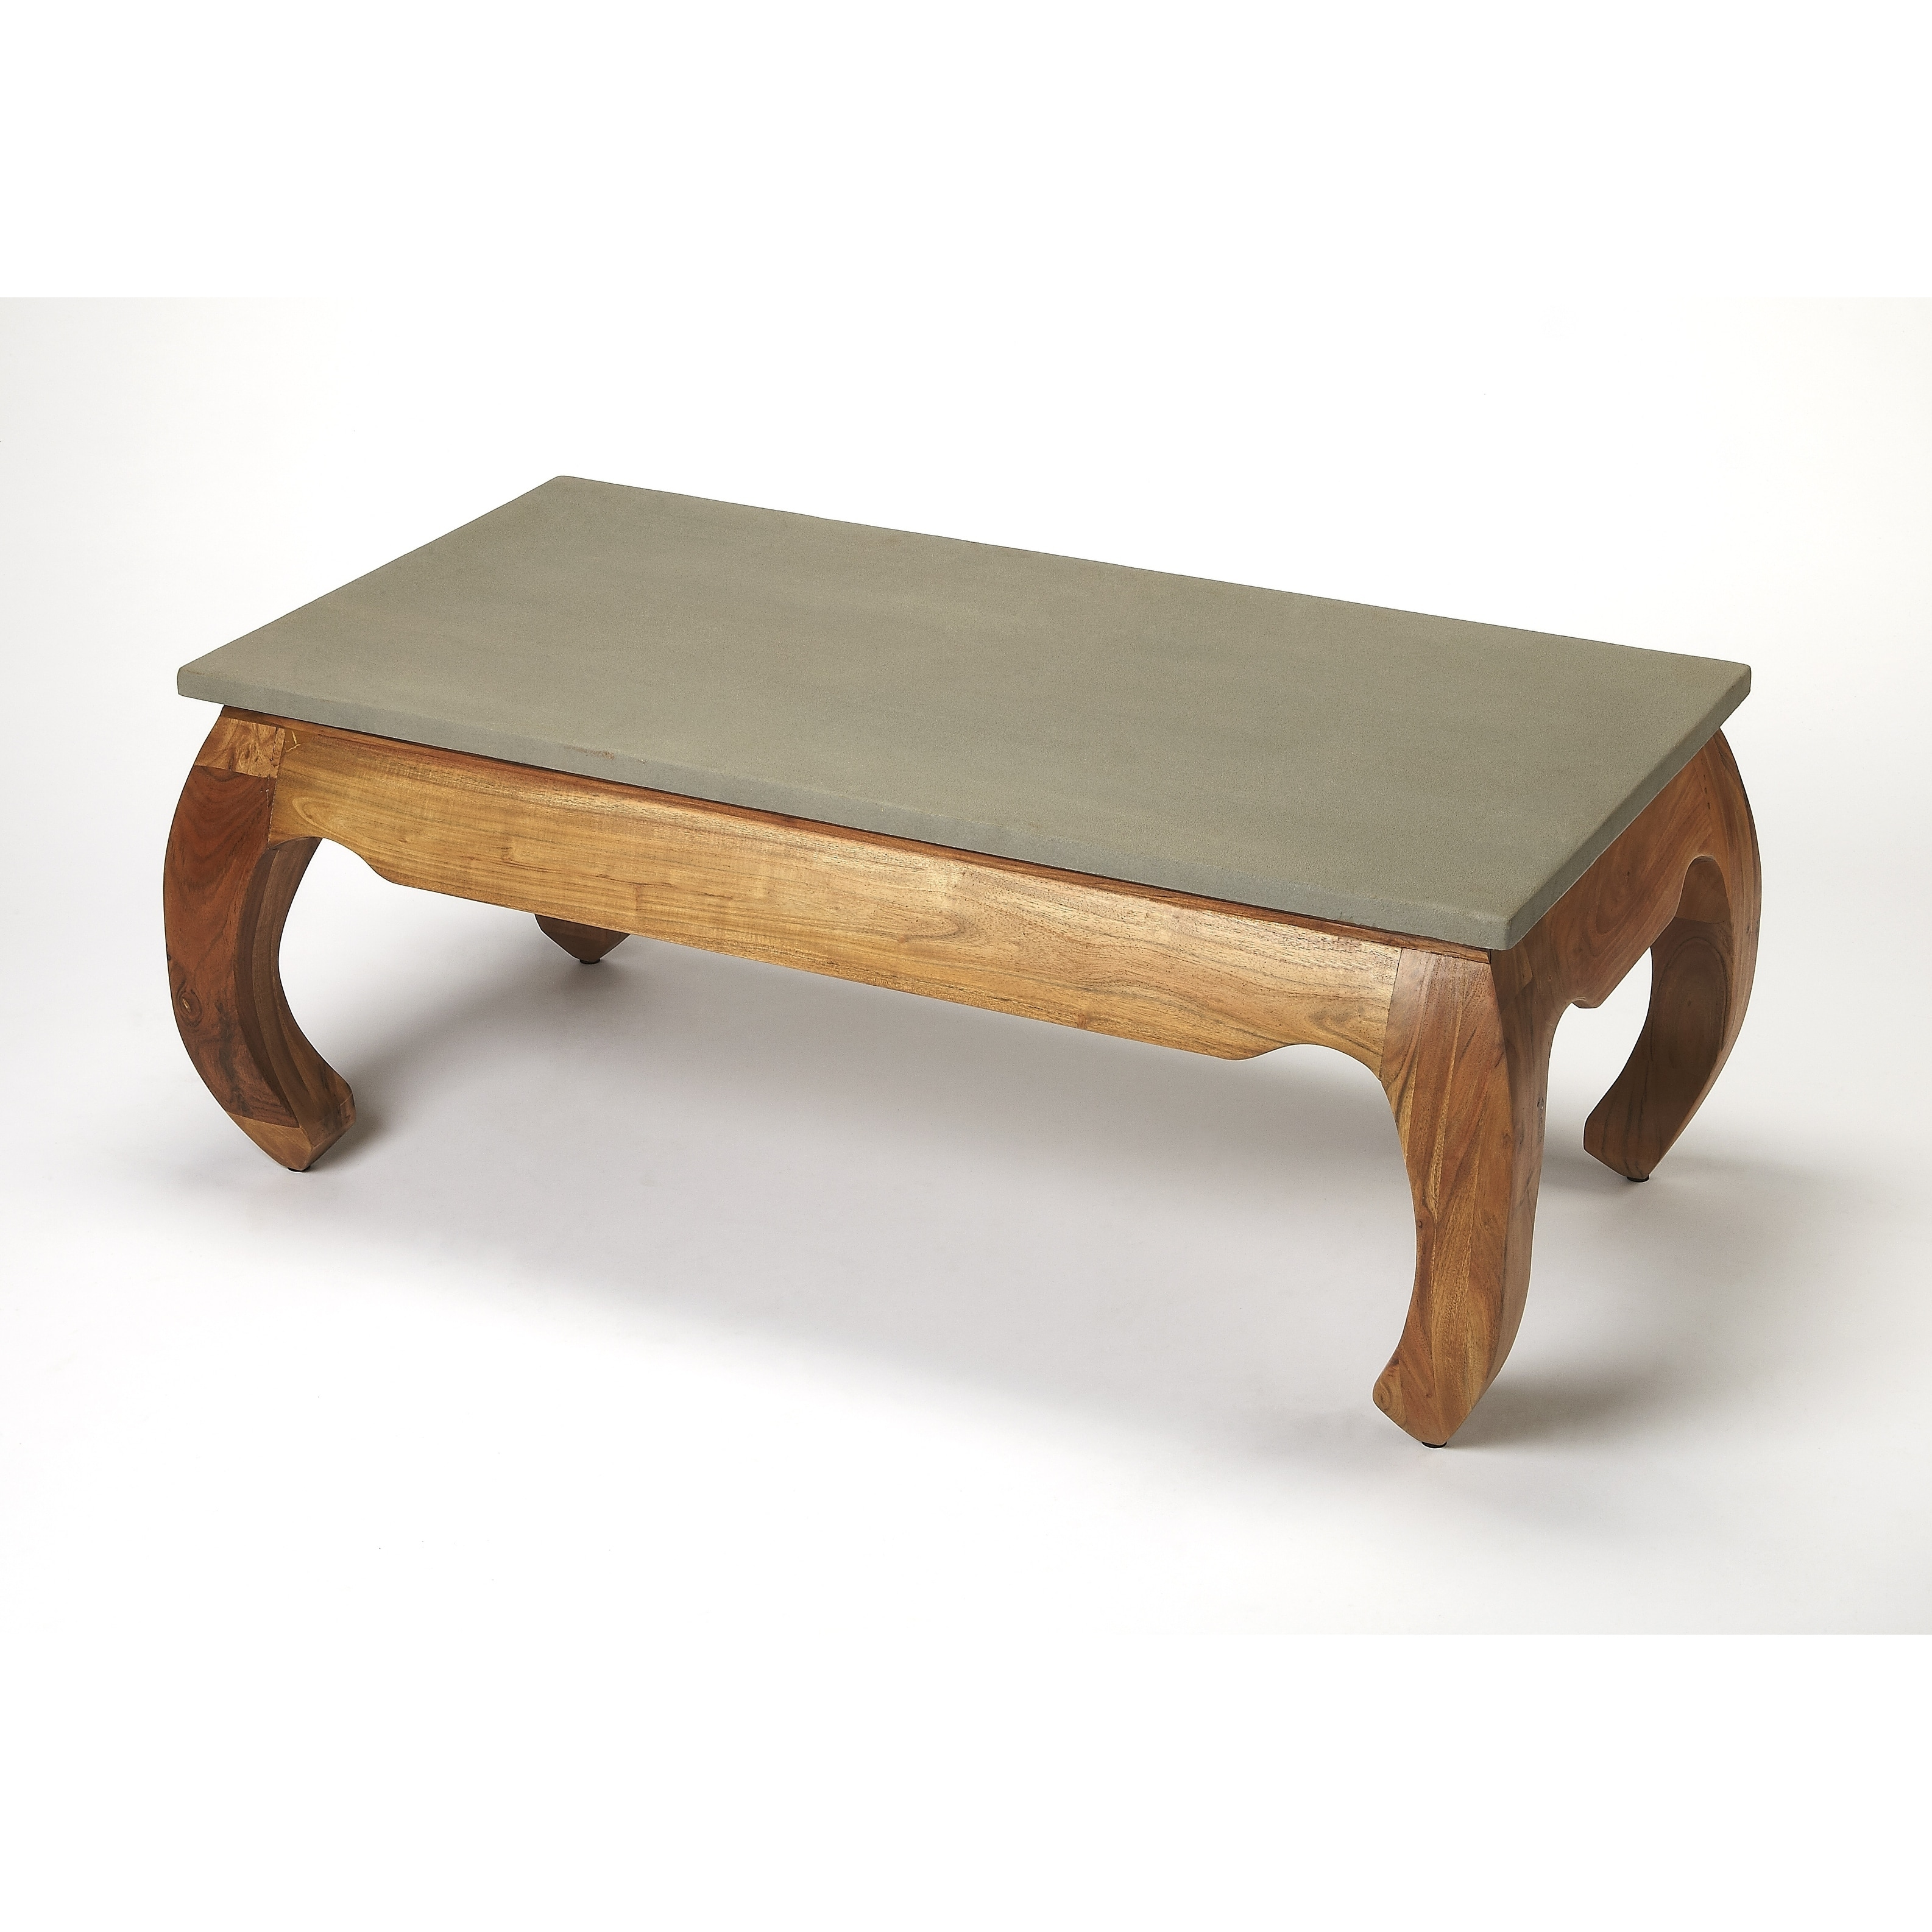 Butler Chandu Concrete & Wood Coffee Table, Multi-Color